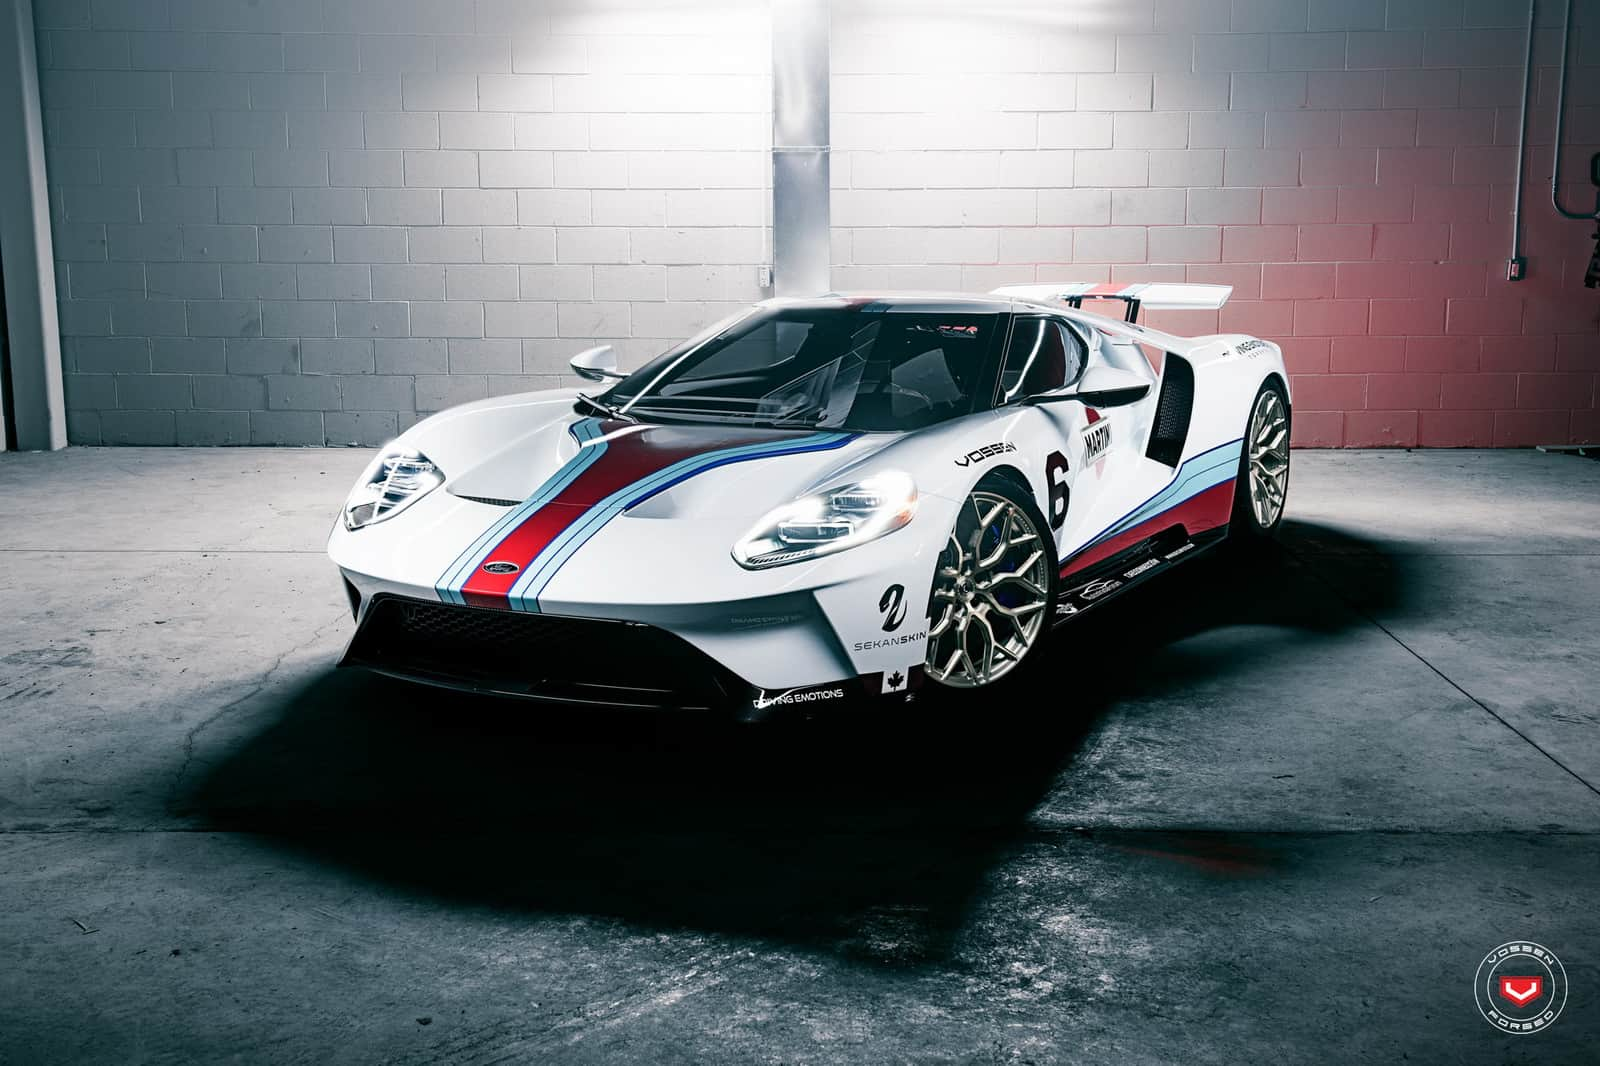 Ford ford gt car : This Ford GT Takes the Martini Livery to the Next Level